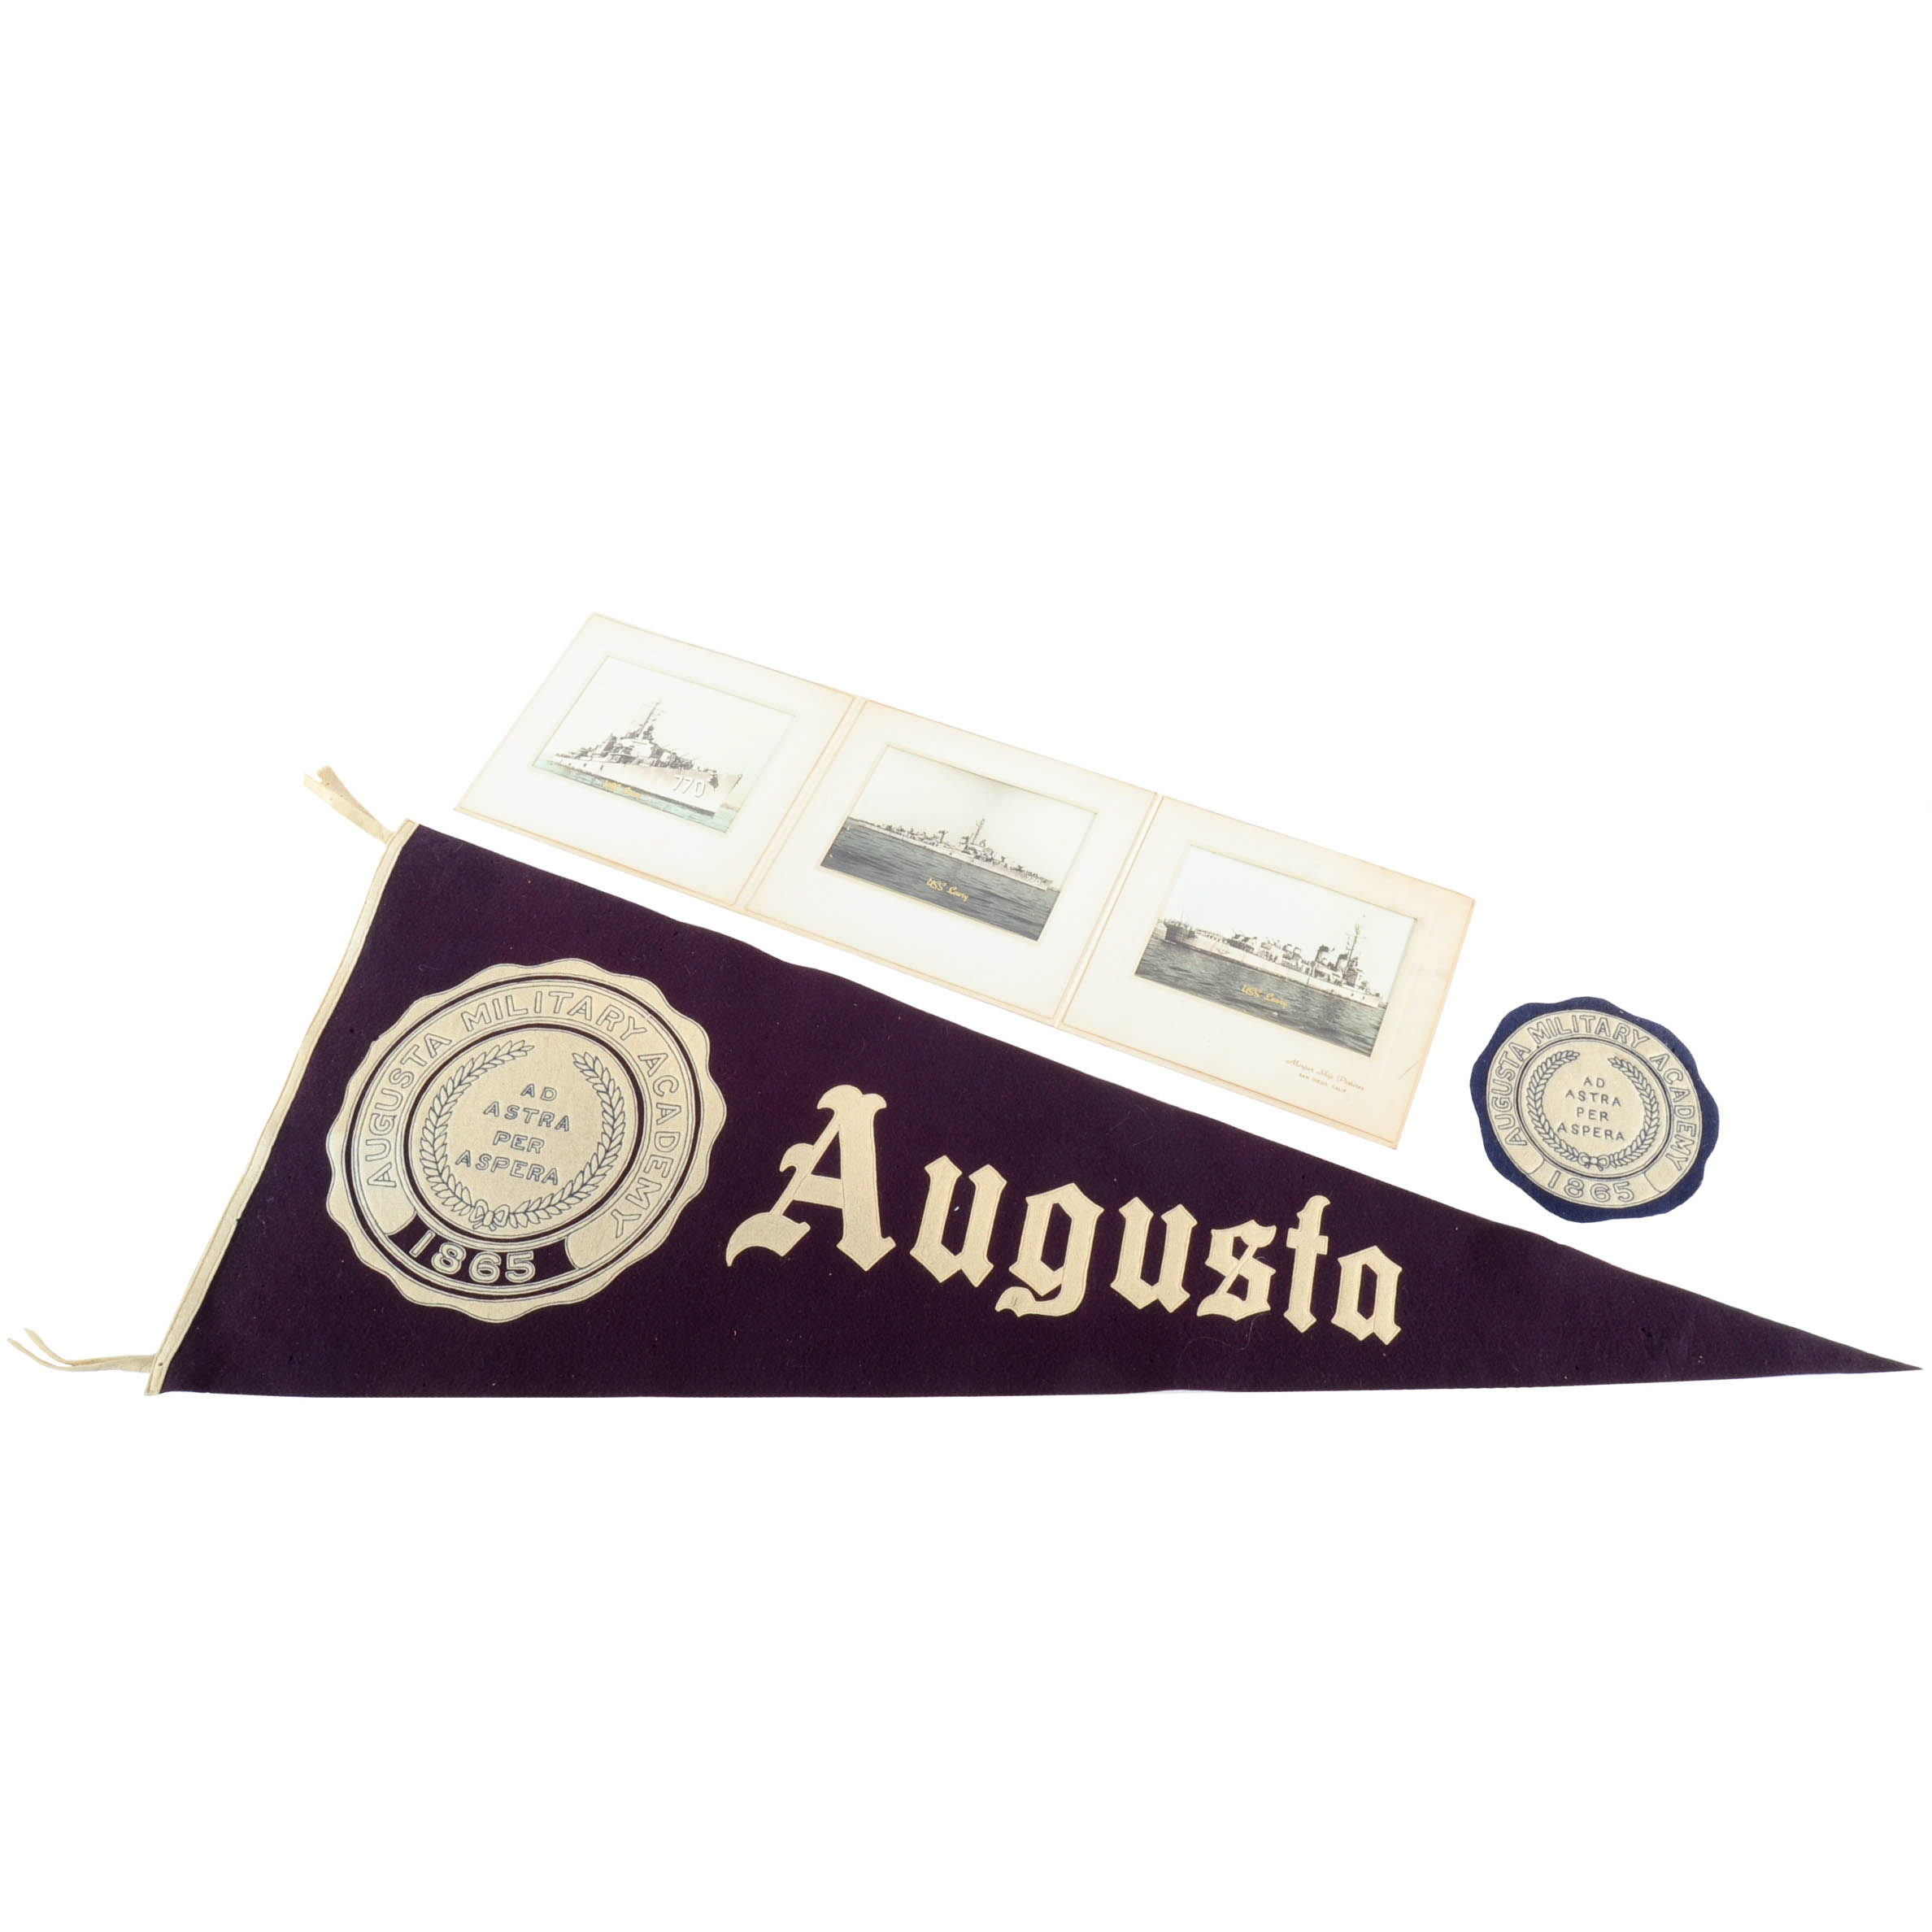 Augusta Military Academy Pennant and Patch